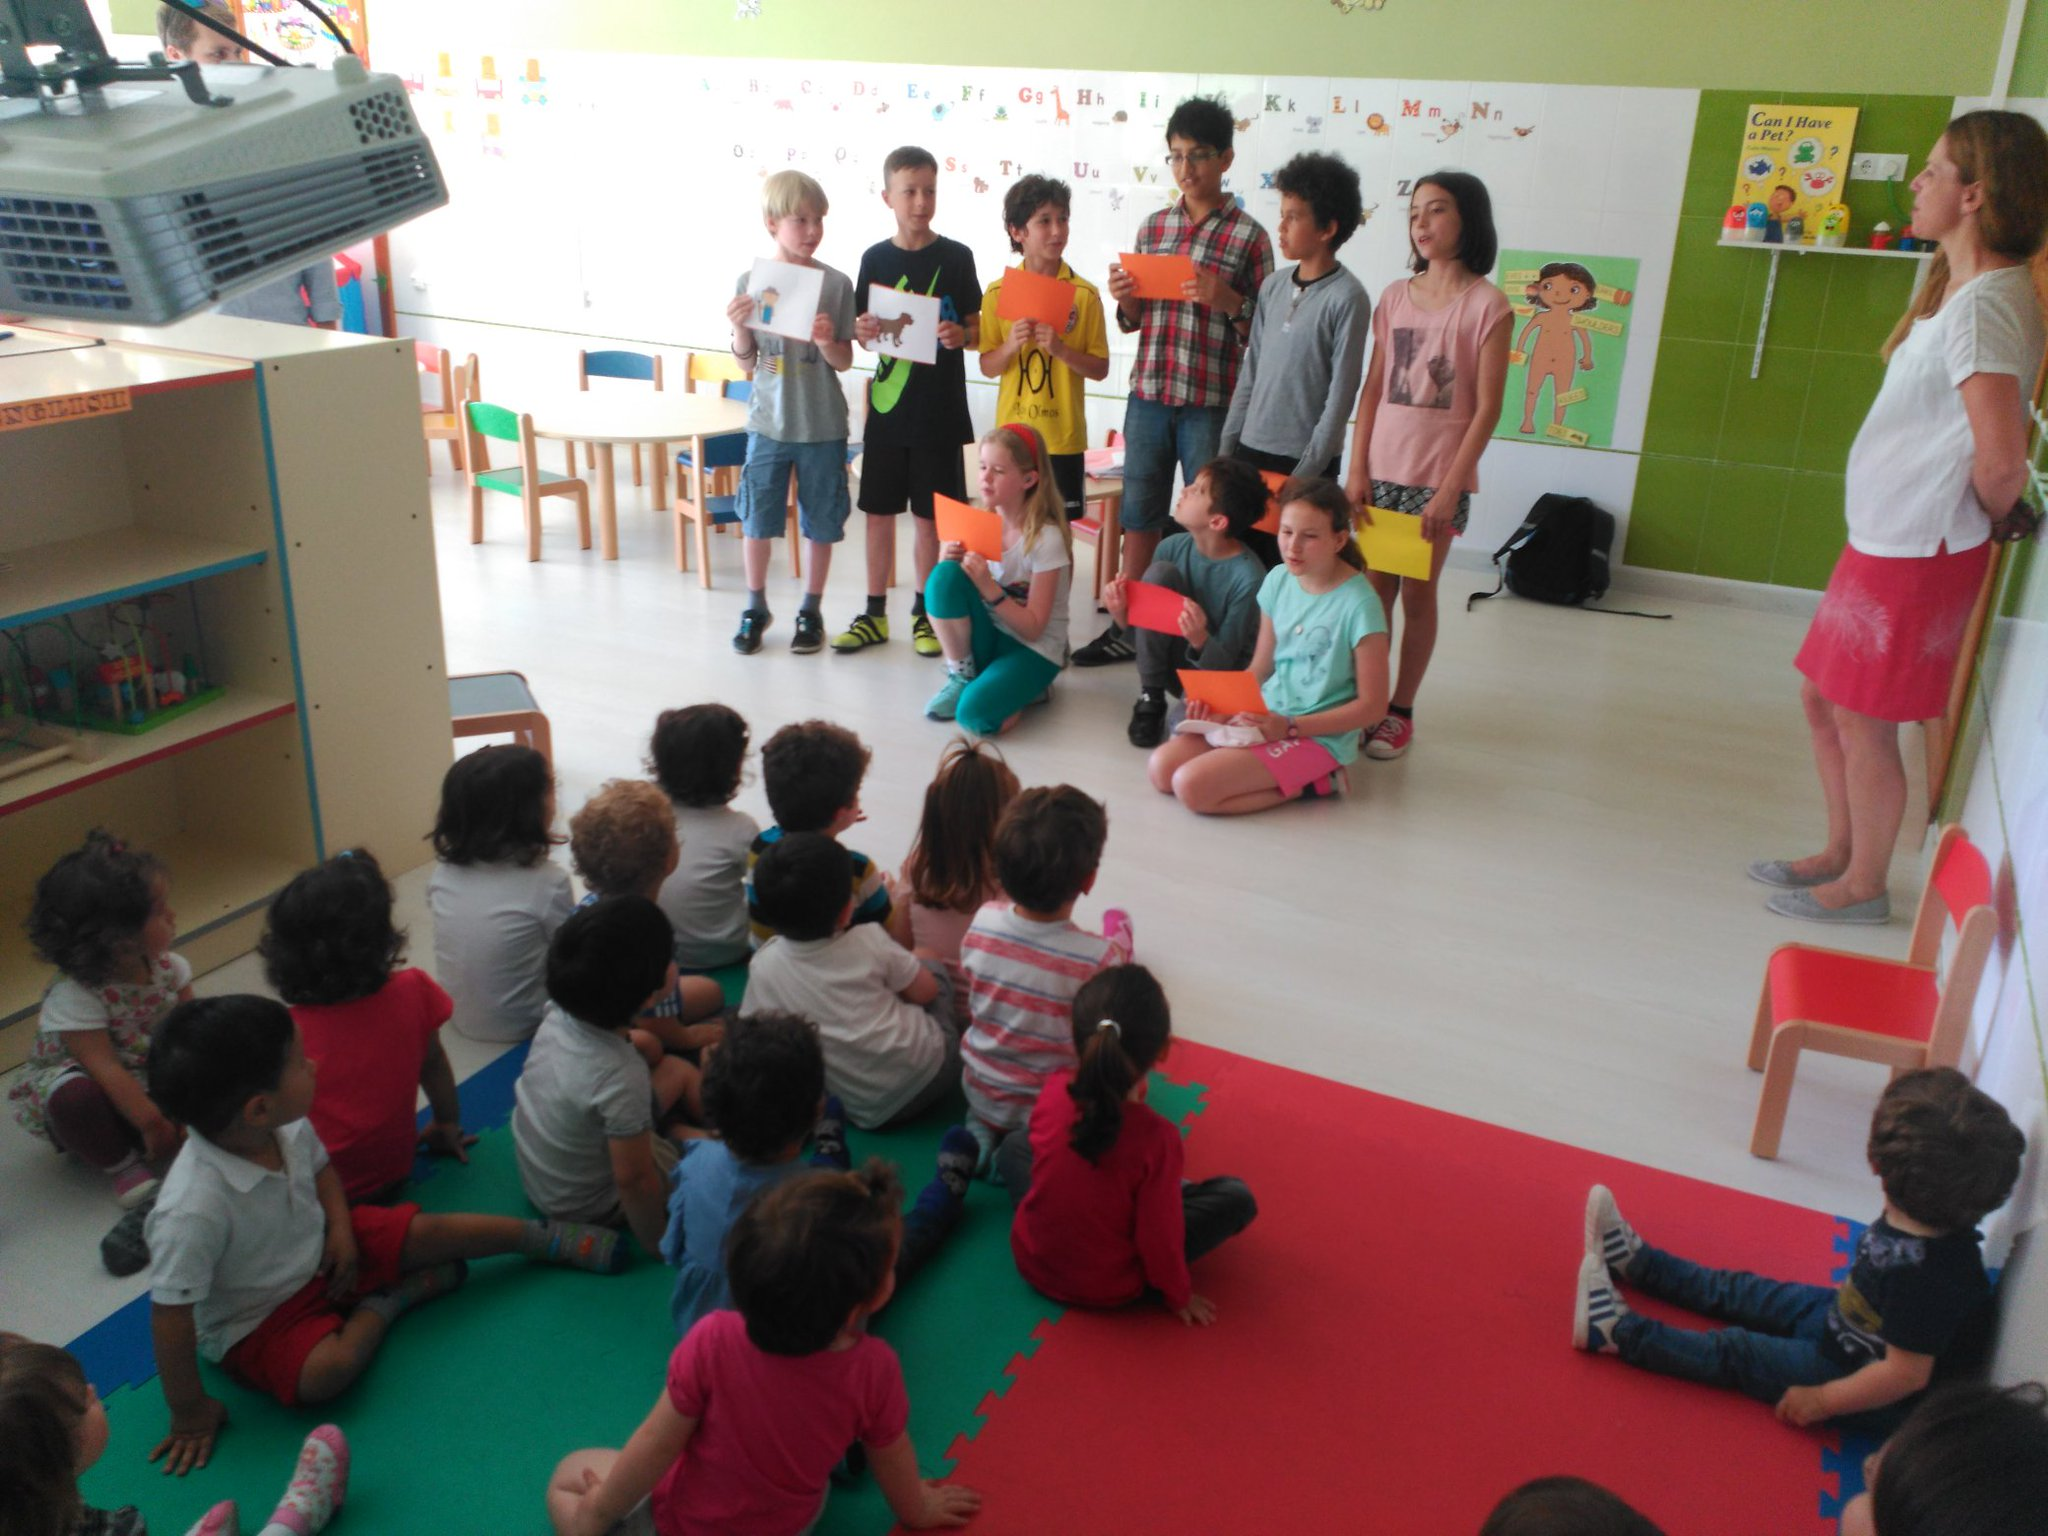 The students from @HTPDSchool have visited also @sghappykids to sing and dance with the kids. Thanks #etwinning #etwinning_cyl https://t.co/9FdNWyGDDu